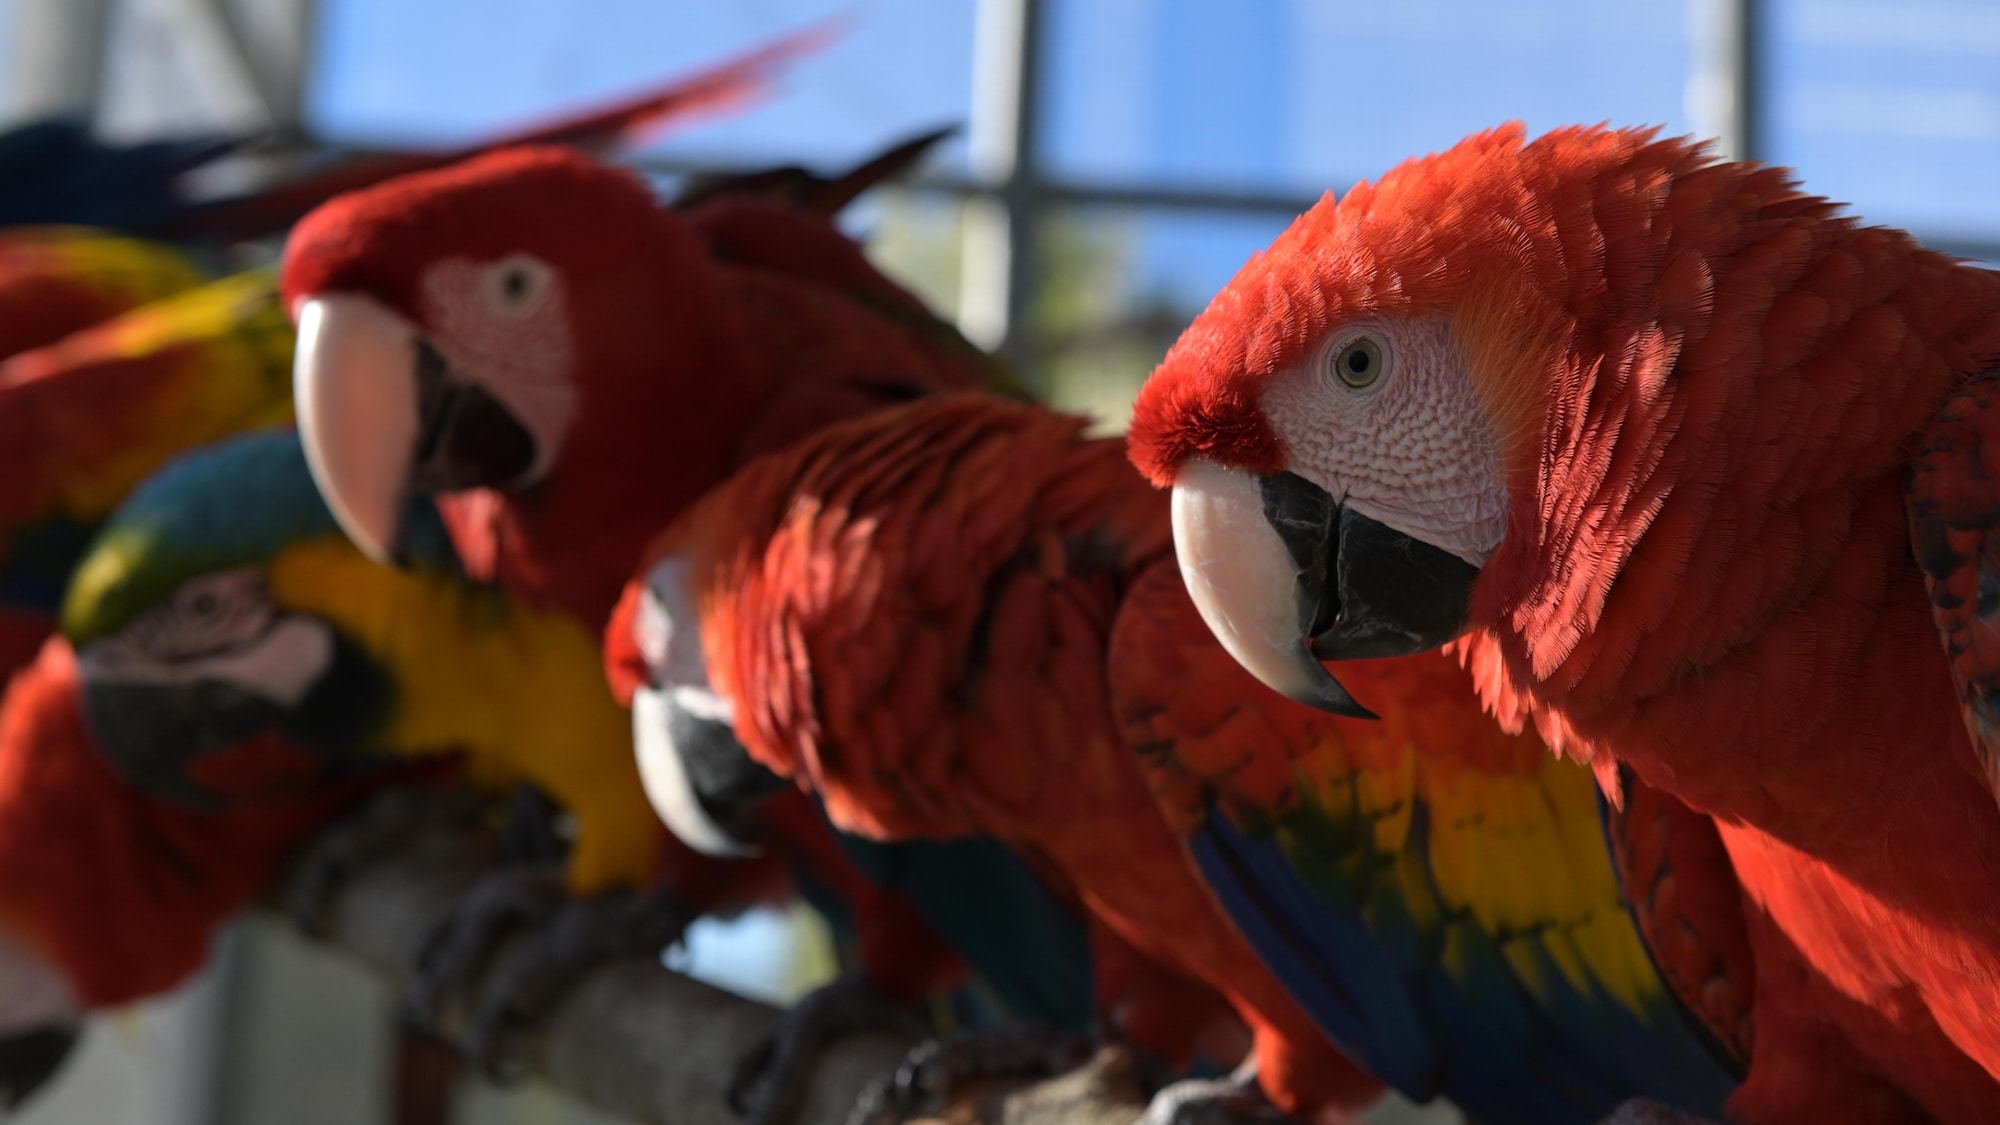 Jayne Scarlet Macaws and other Macaws sitting on branch. (Charlene Guilliams/Disney)